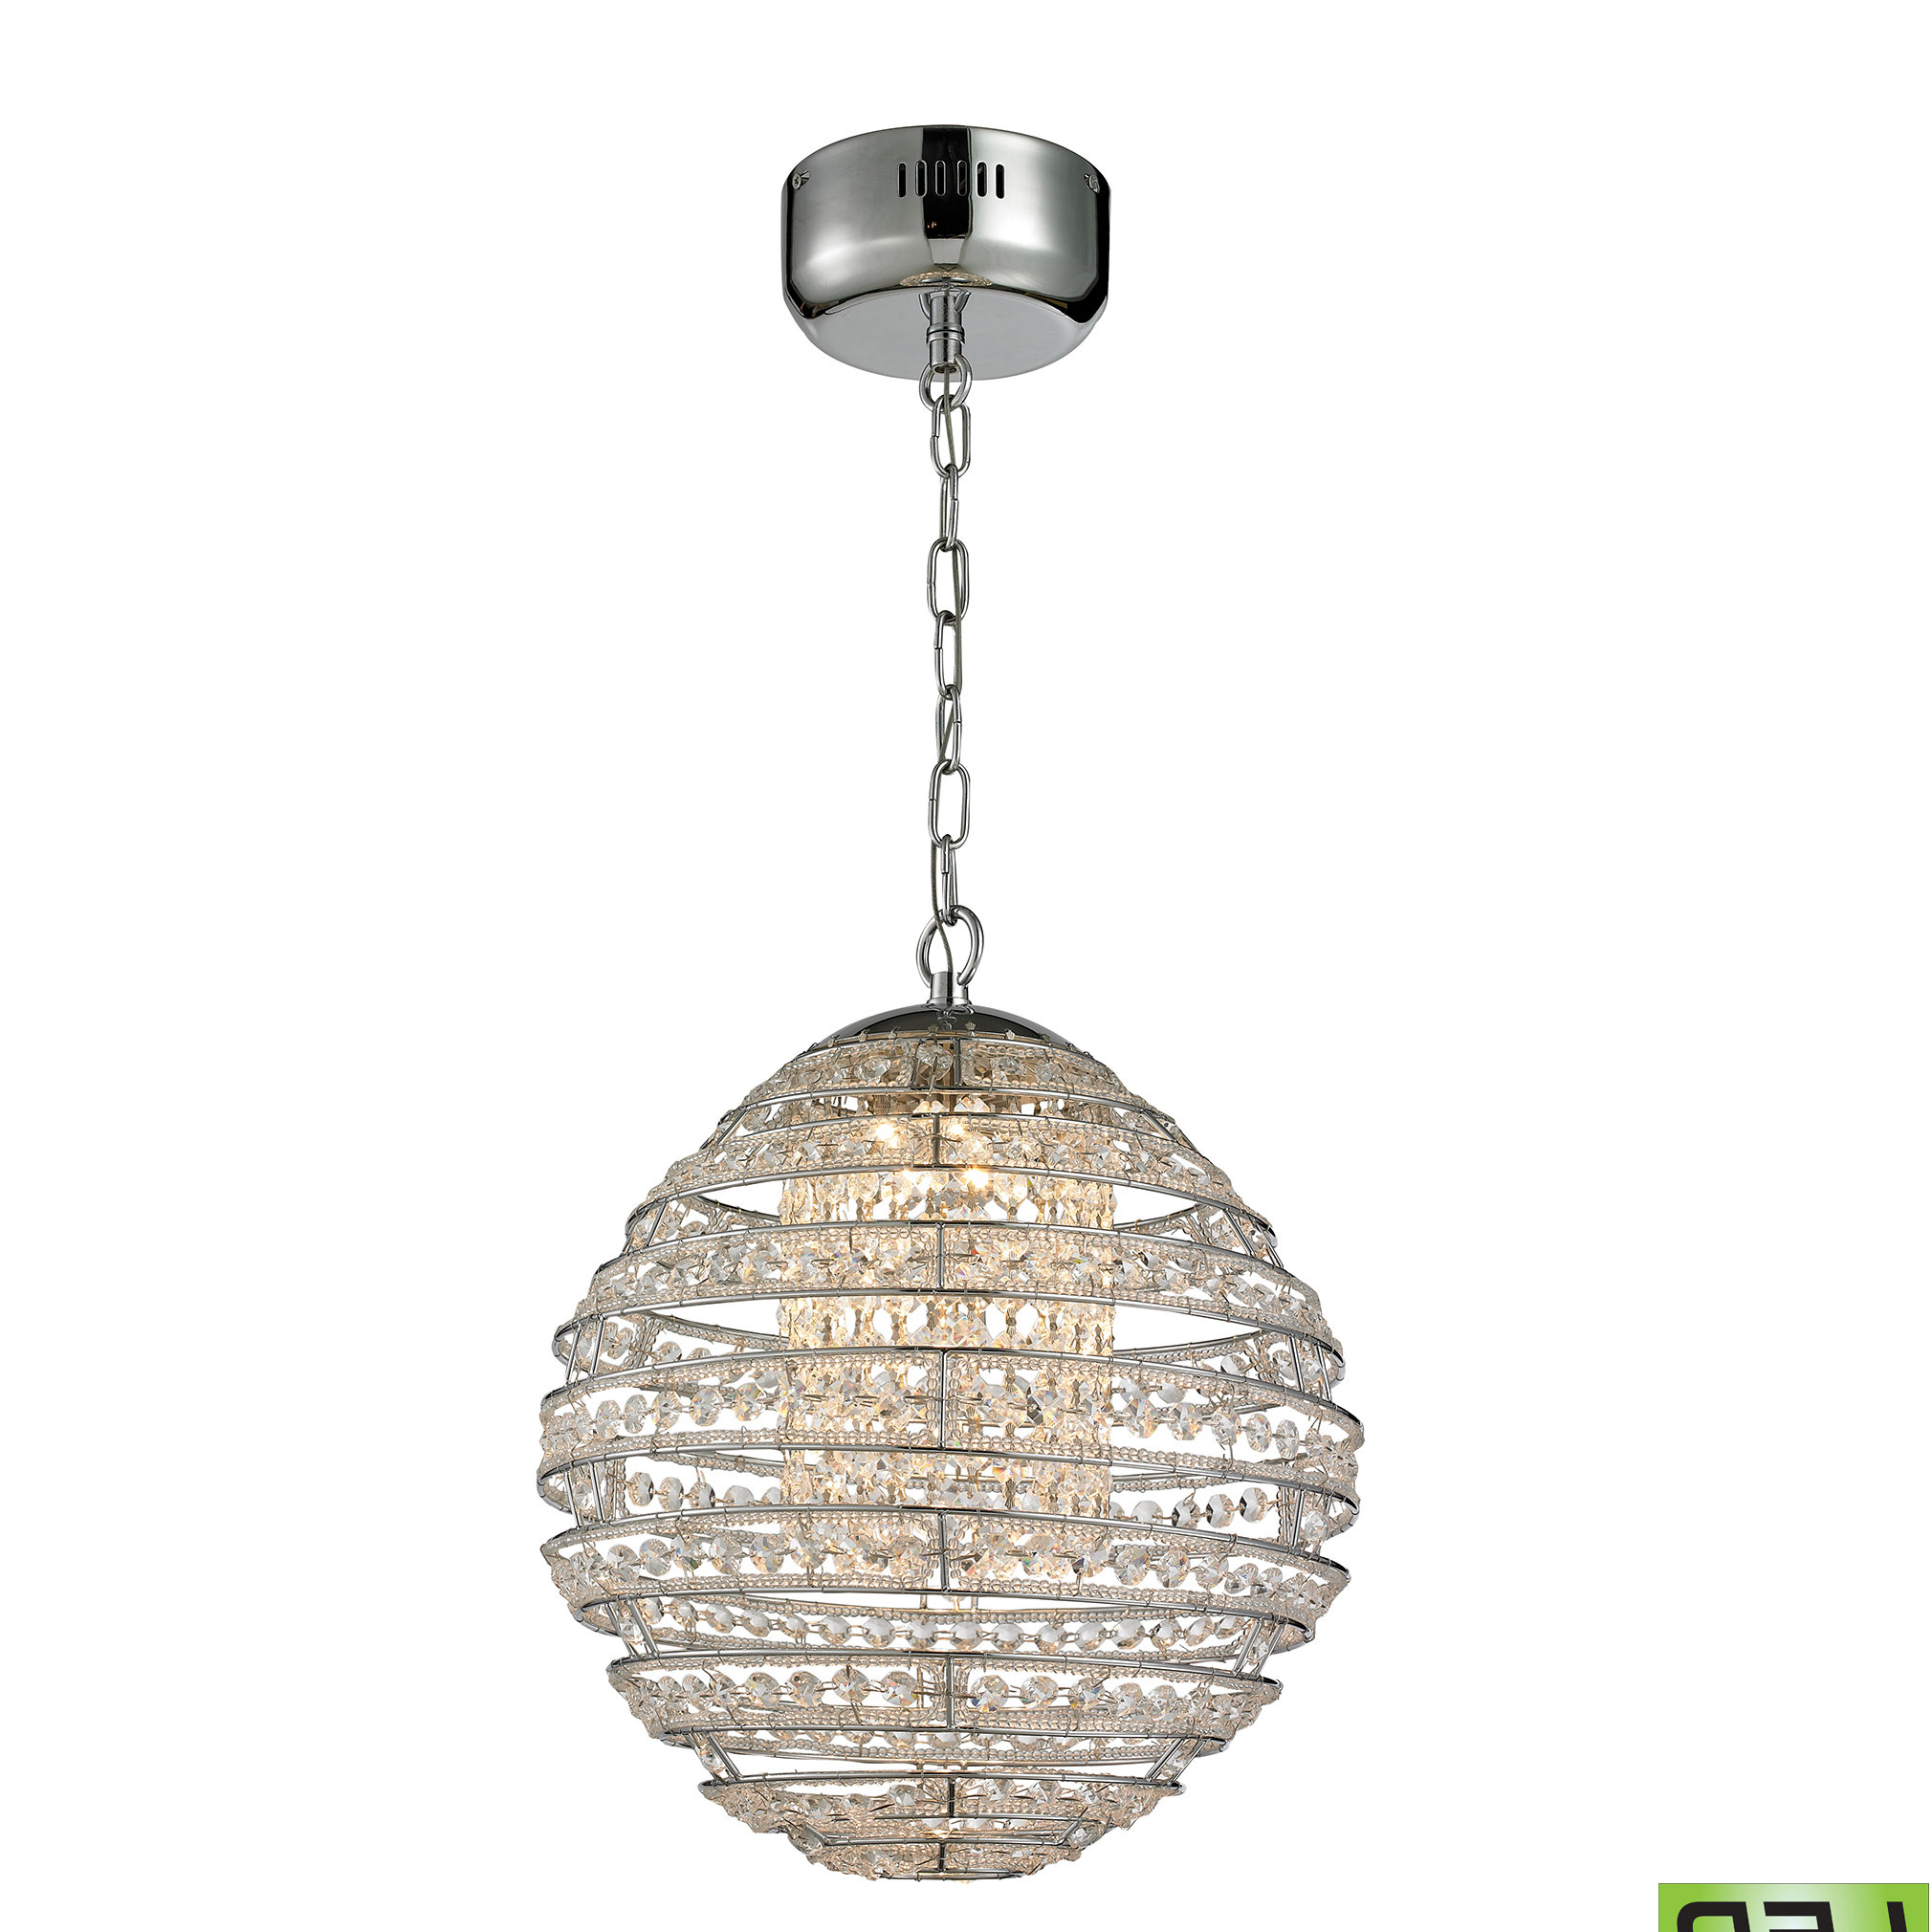 Hermione 1 Light Single Drum Pendants Intended For Famous Tussey 1 Light Led Single Globe Pendant (View 9 of 20)